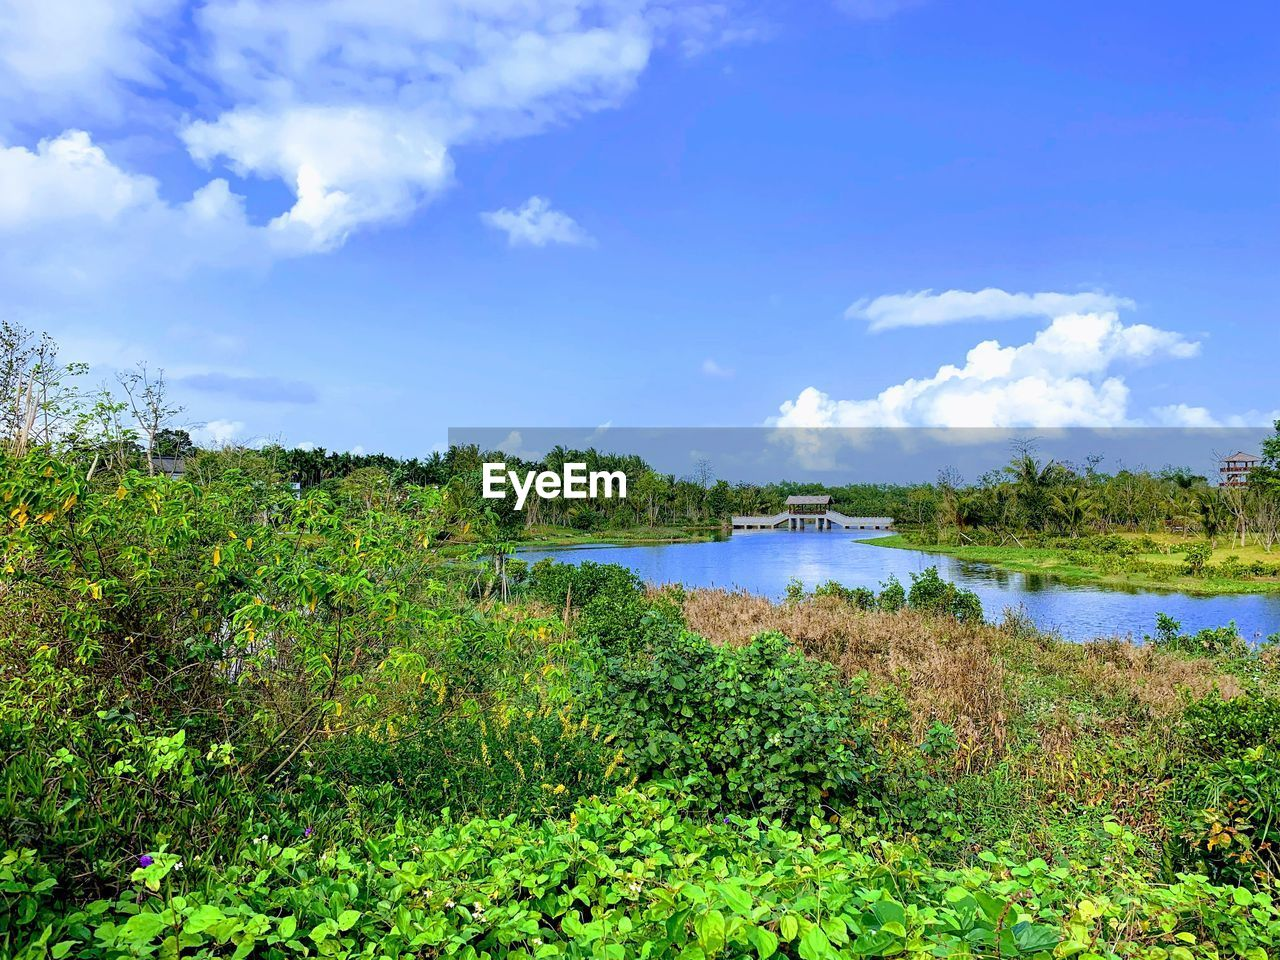 plant, water, sky, tranquility, scenics - nature, cloud - sky, tree, beauty in nature, tranquil scene, growth, nature, green color, day, lake, no people, non-urban scene, land, outdoors